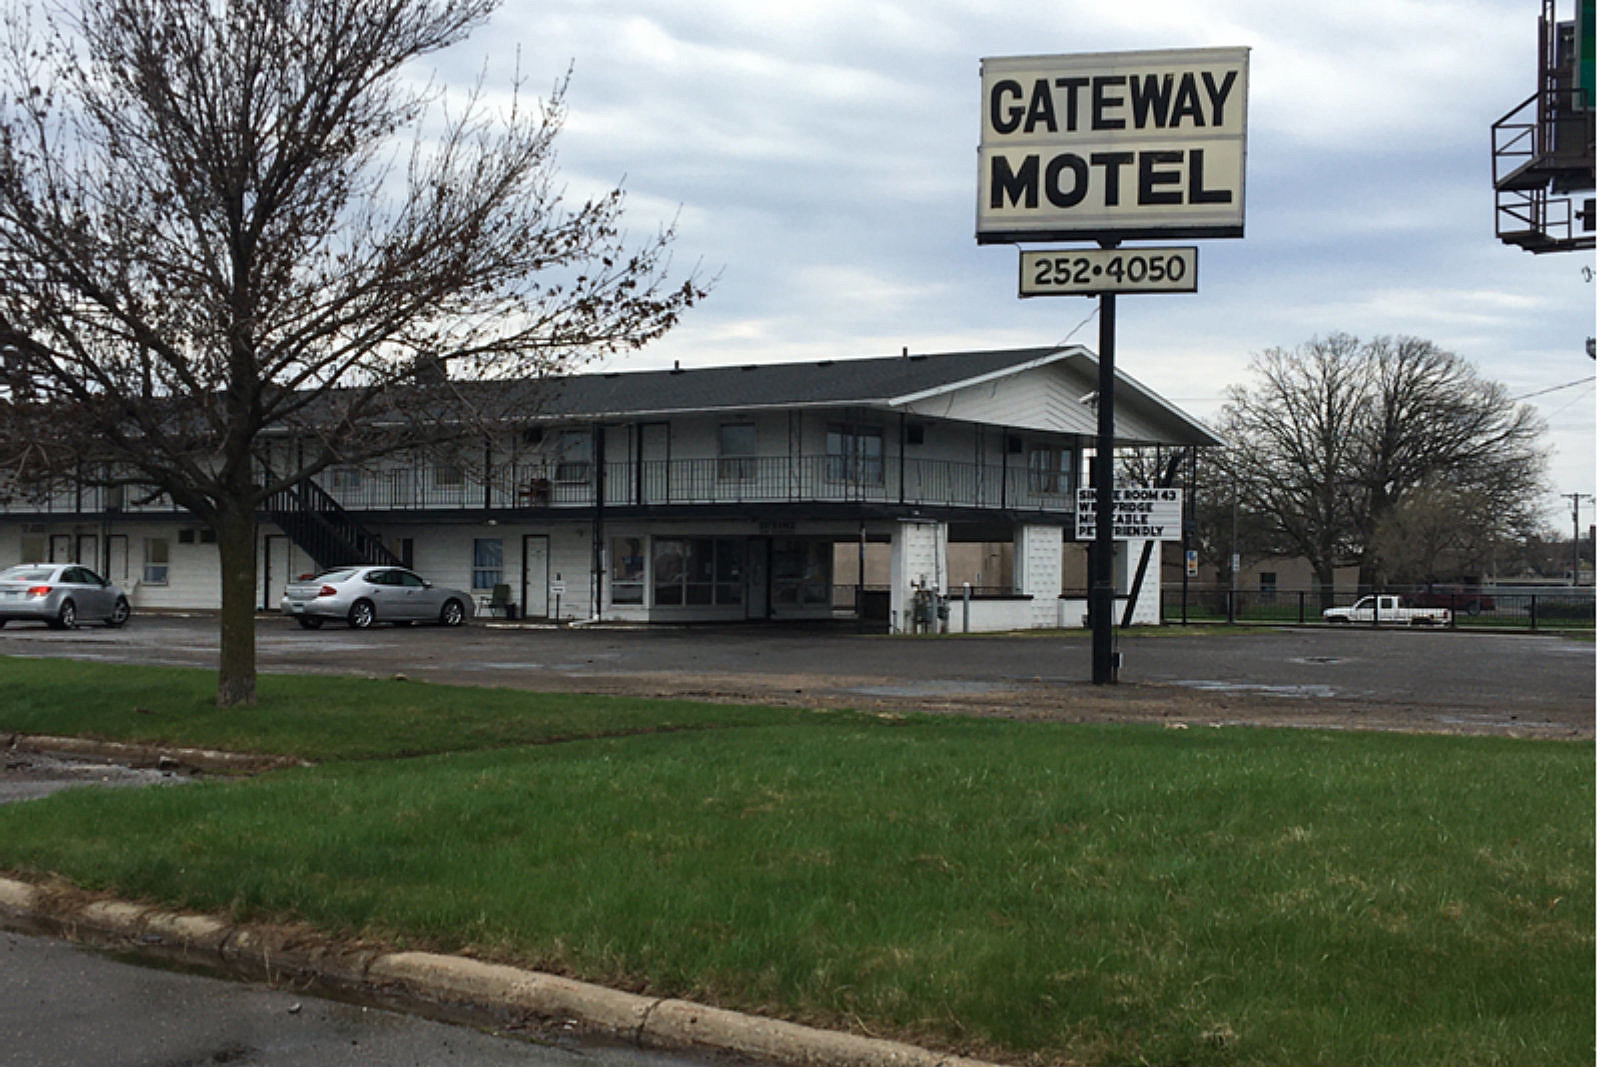 Gateway Motel Redevelopment Project Awarded State Grant